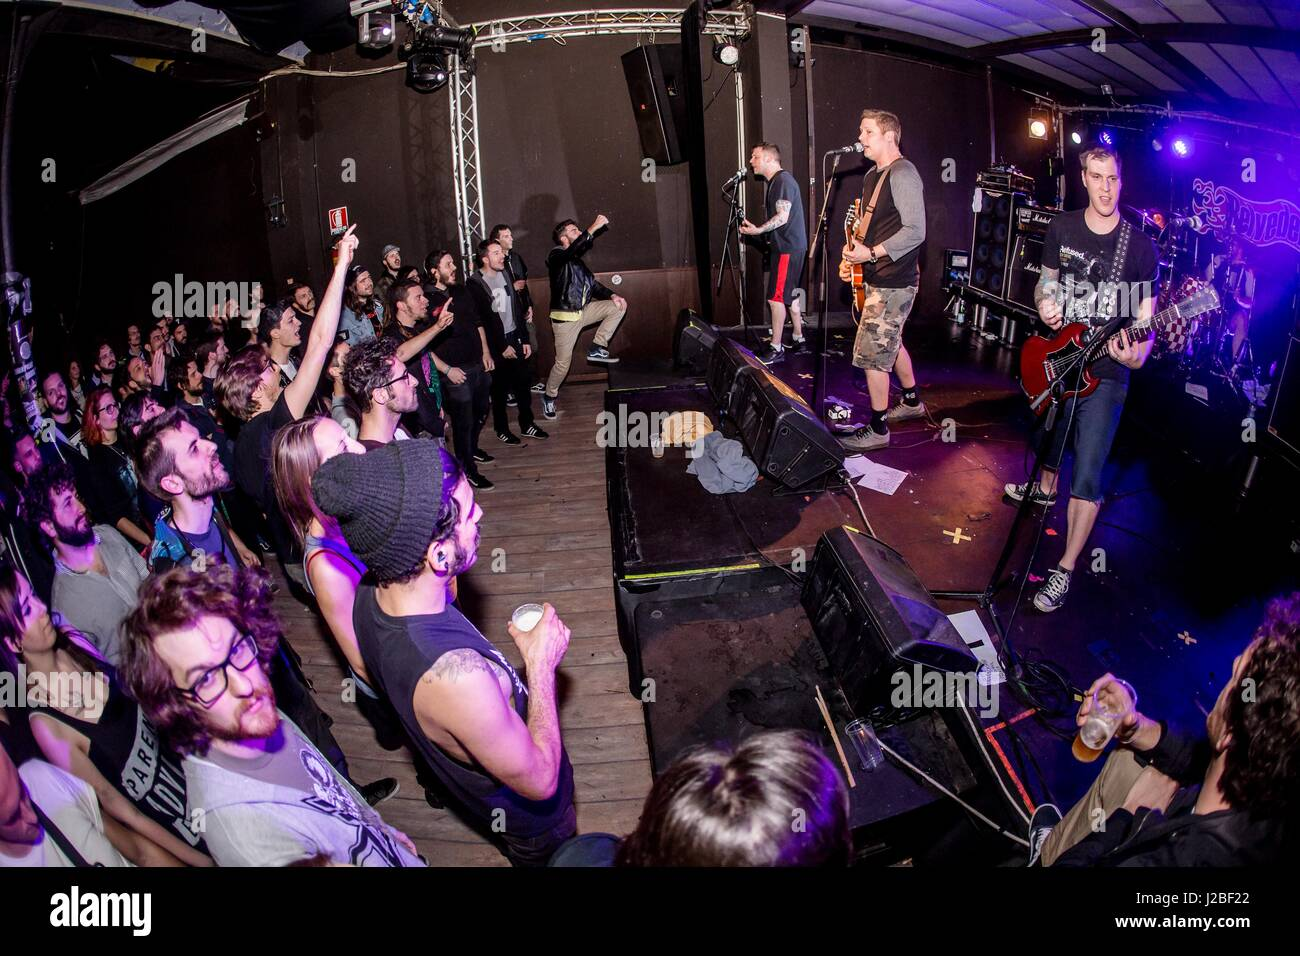 Punk rock band Belvedere performs live at Honky Tonky. Credit: PACIFIC PRESS/Alamy Live News - Stock Image